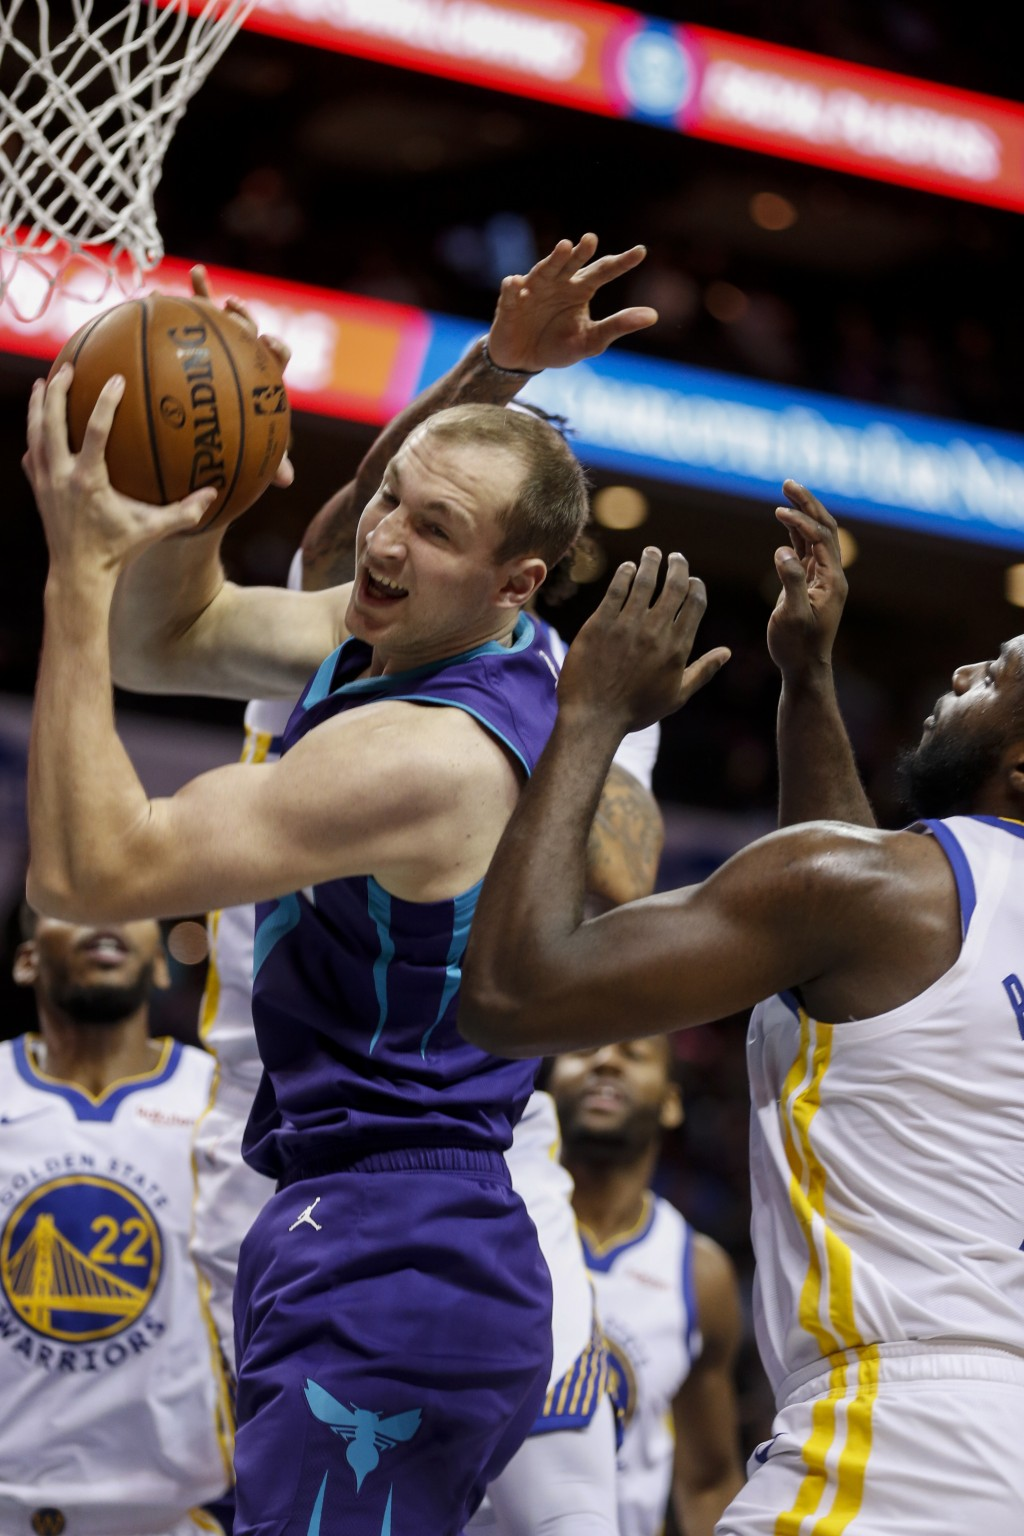 Charlotte Hornets forward Cody Zeller pulls down an offensive rebound during the first half of the team's NBA basketball game against the Golden State...